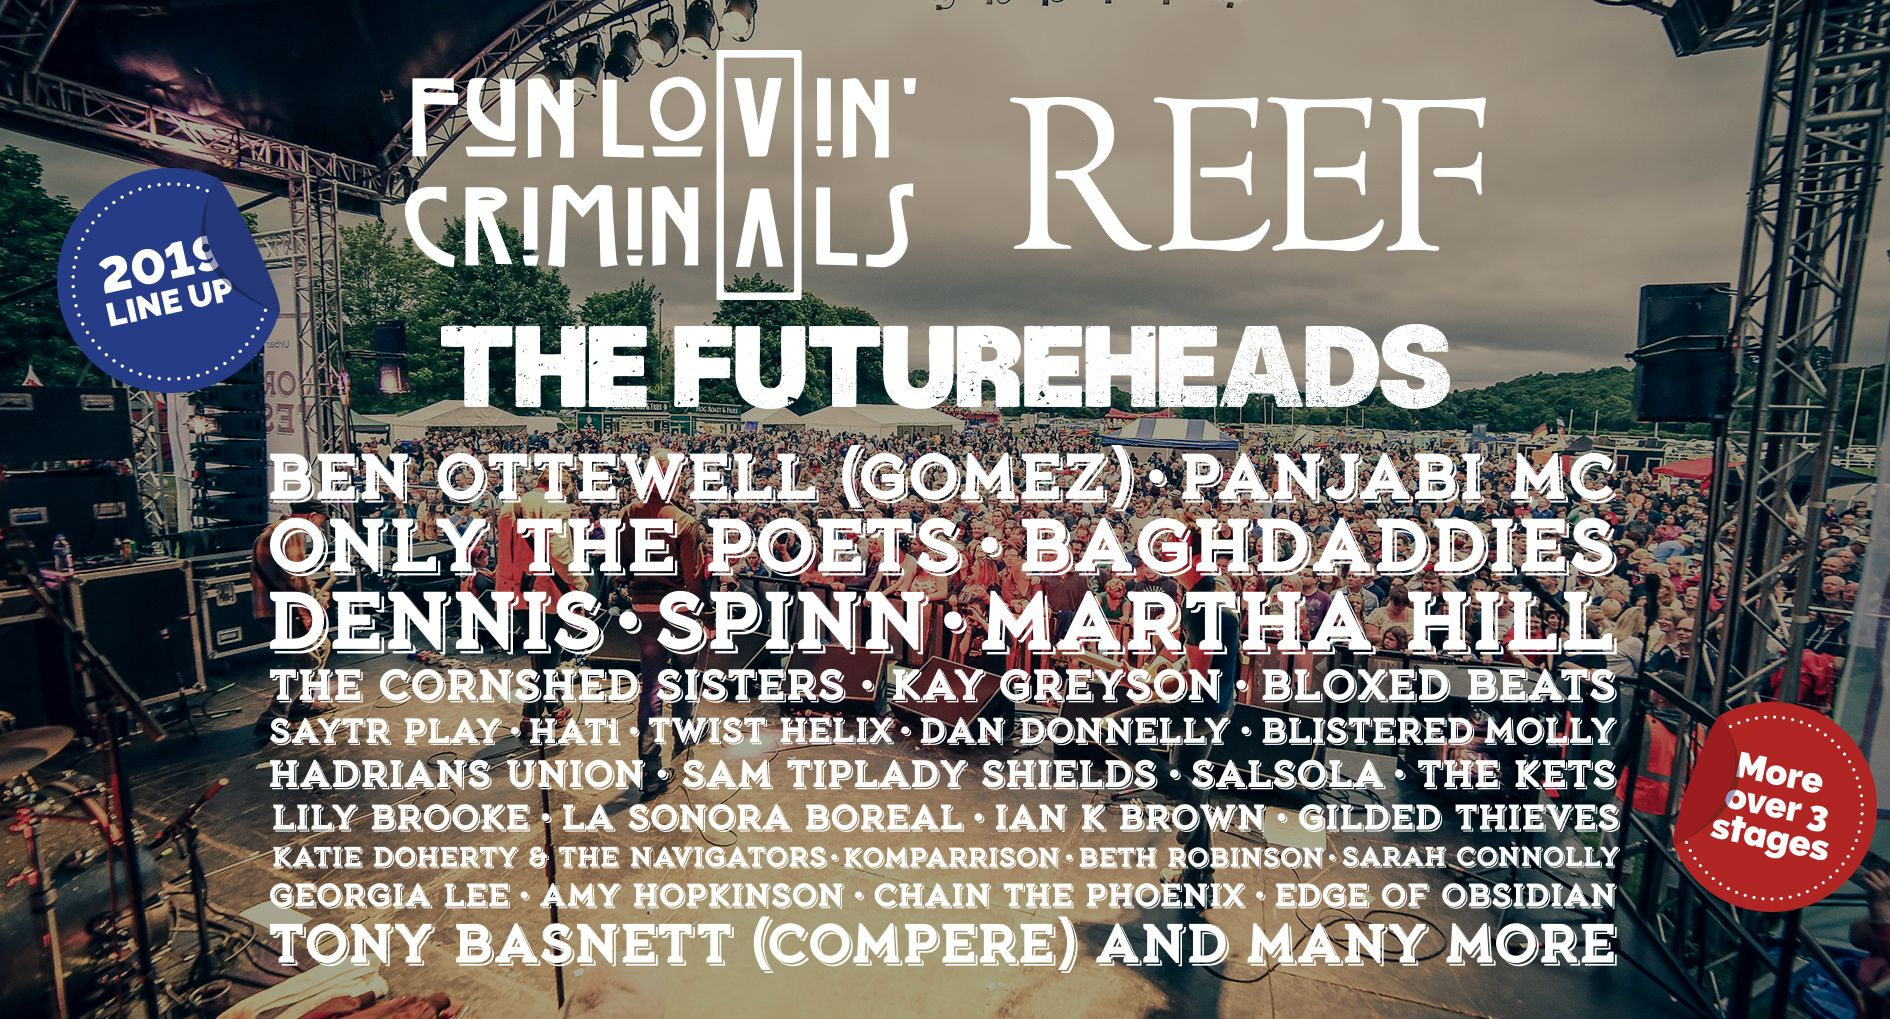 The Corbridge Festival 2019 line-up, headlined by Fun Lovin' Criminals and Reef - with support from The Futureheads and many more across 3 stages.